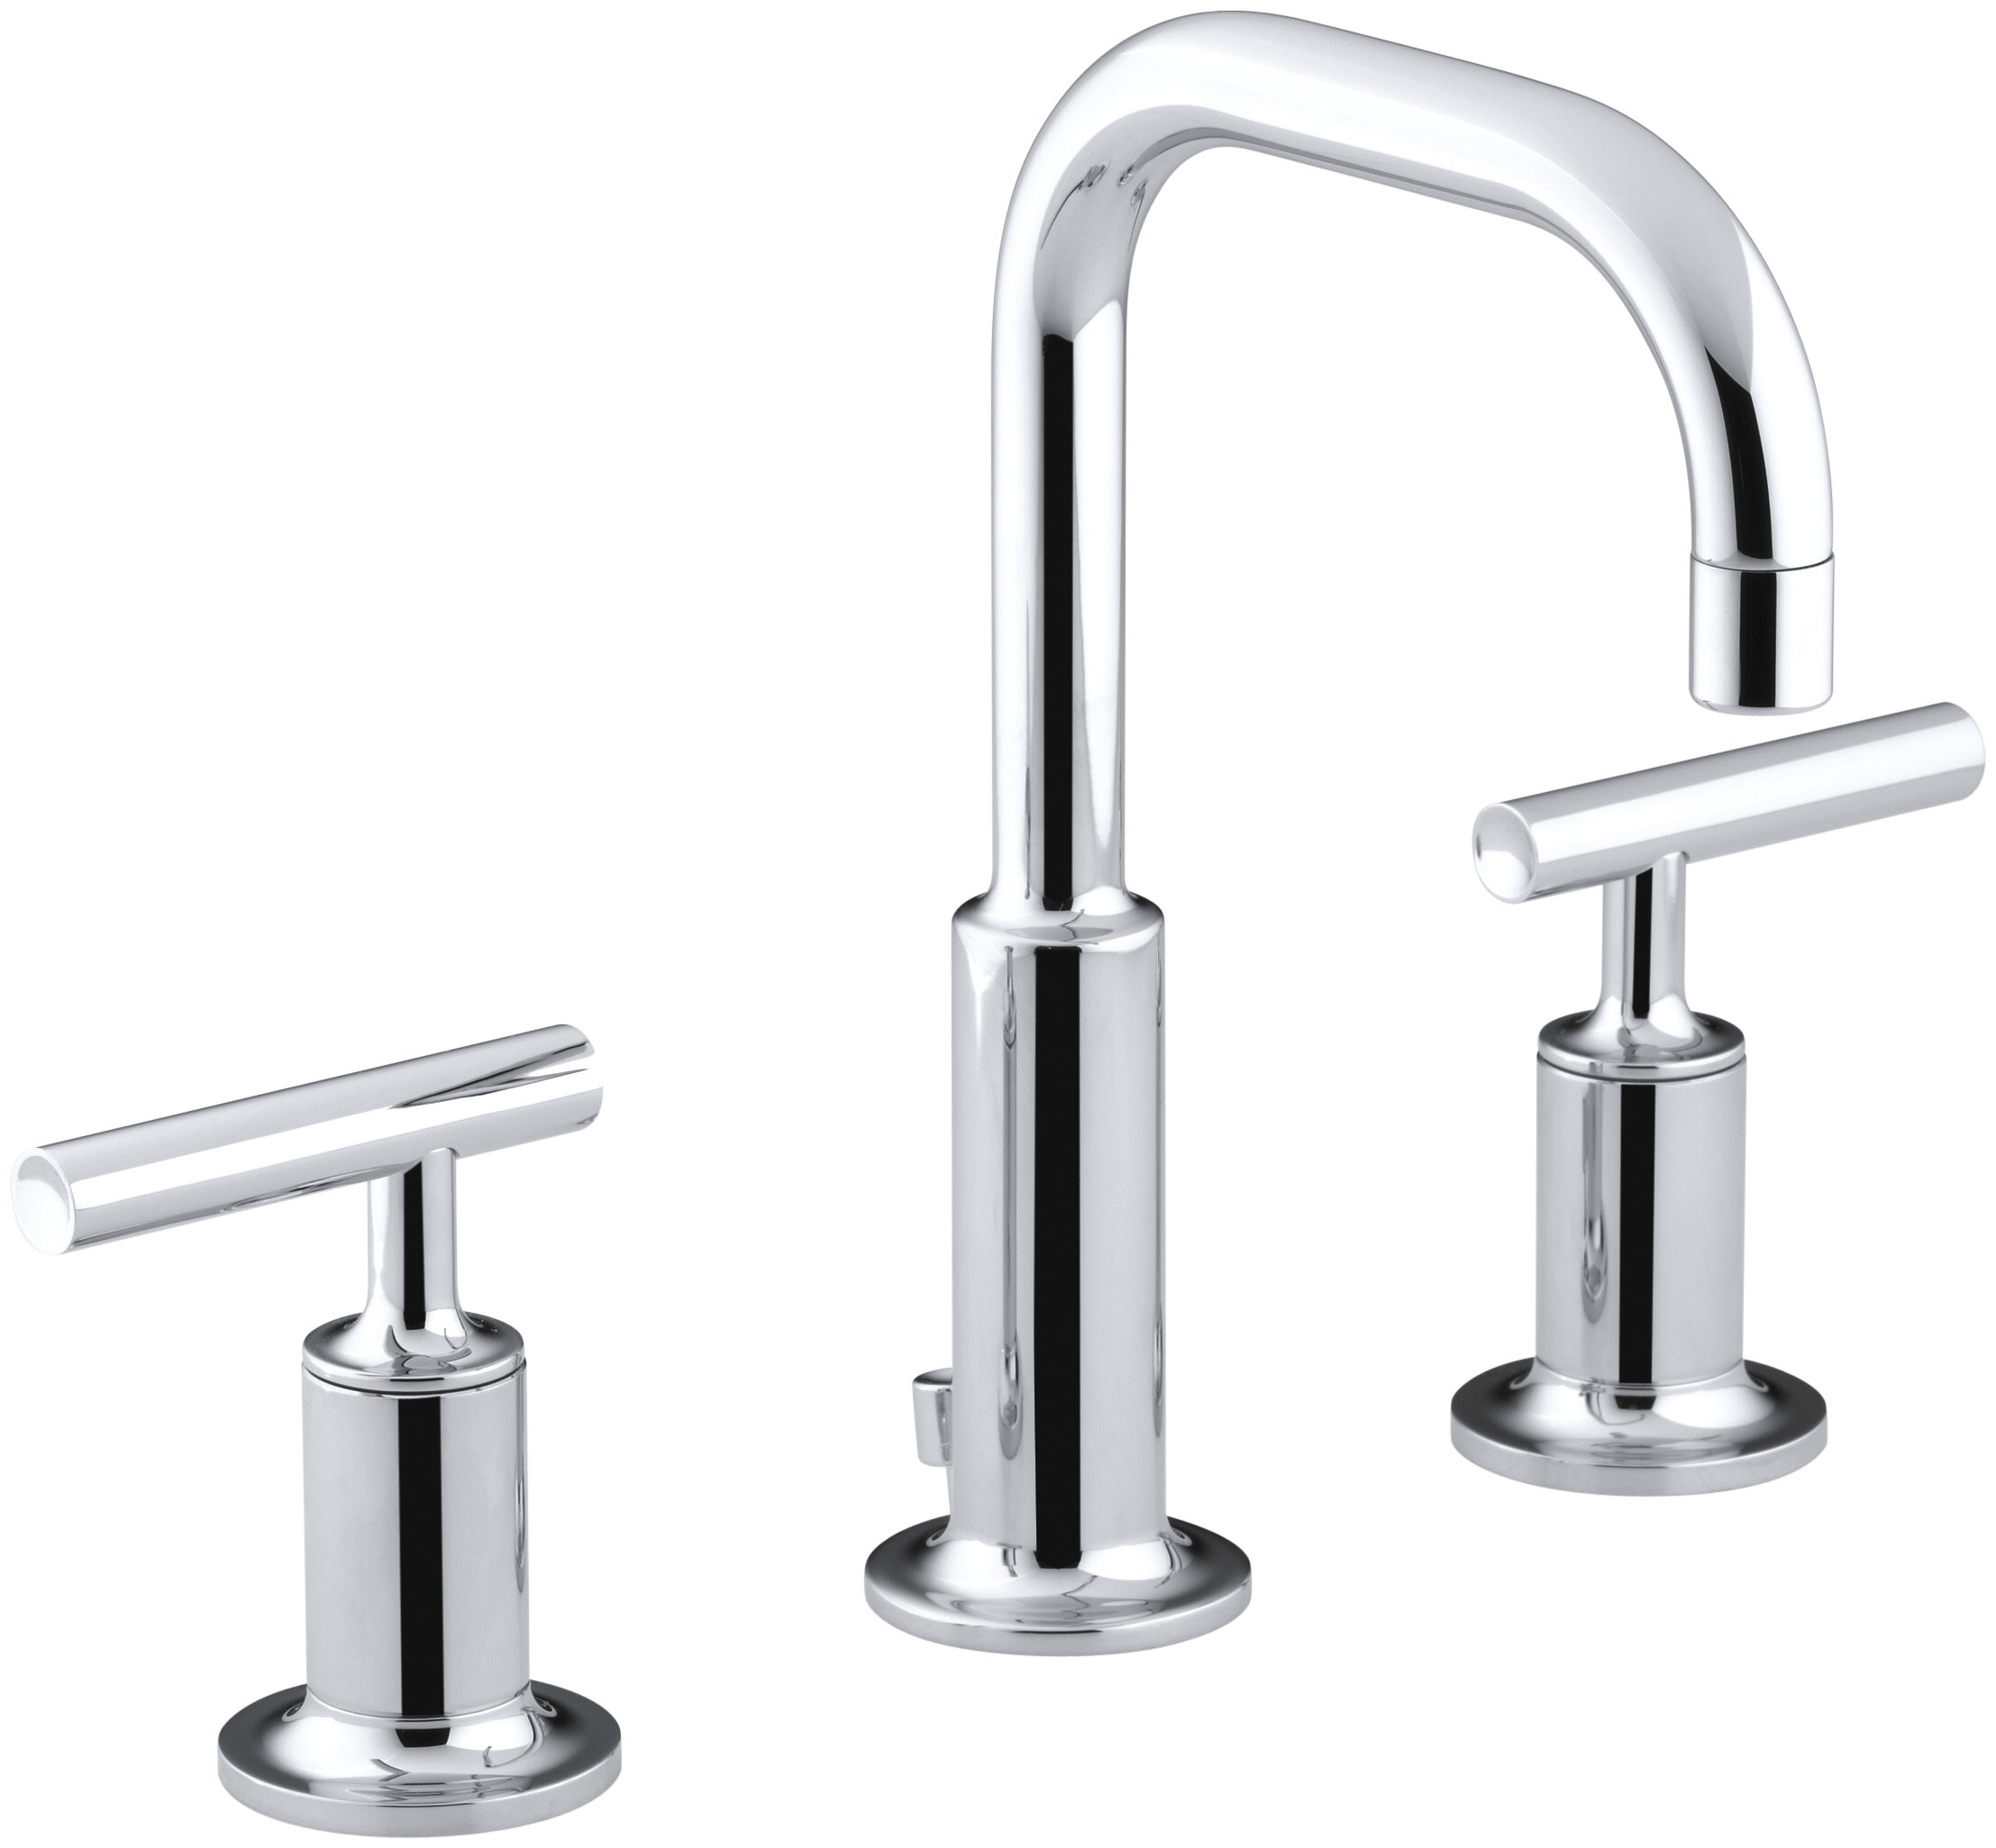 K-14406-4-BGD,BL,BN Kohler Purist Widespread Bathroom Faucet with ...